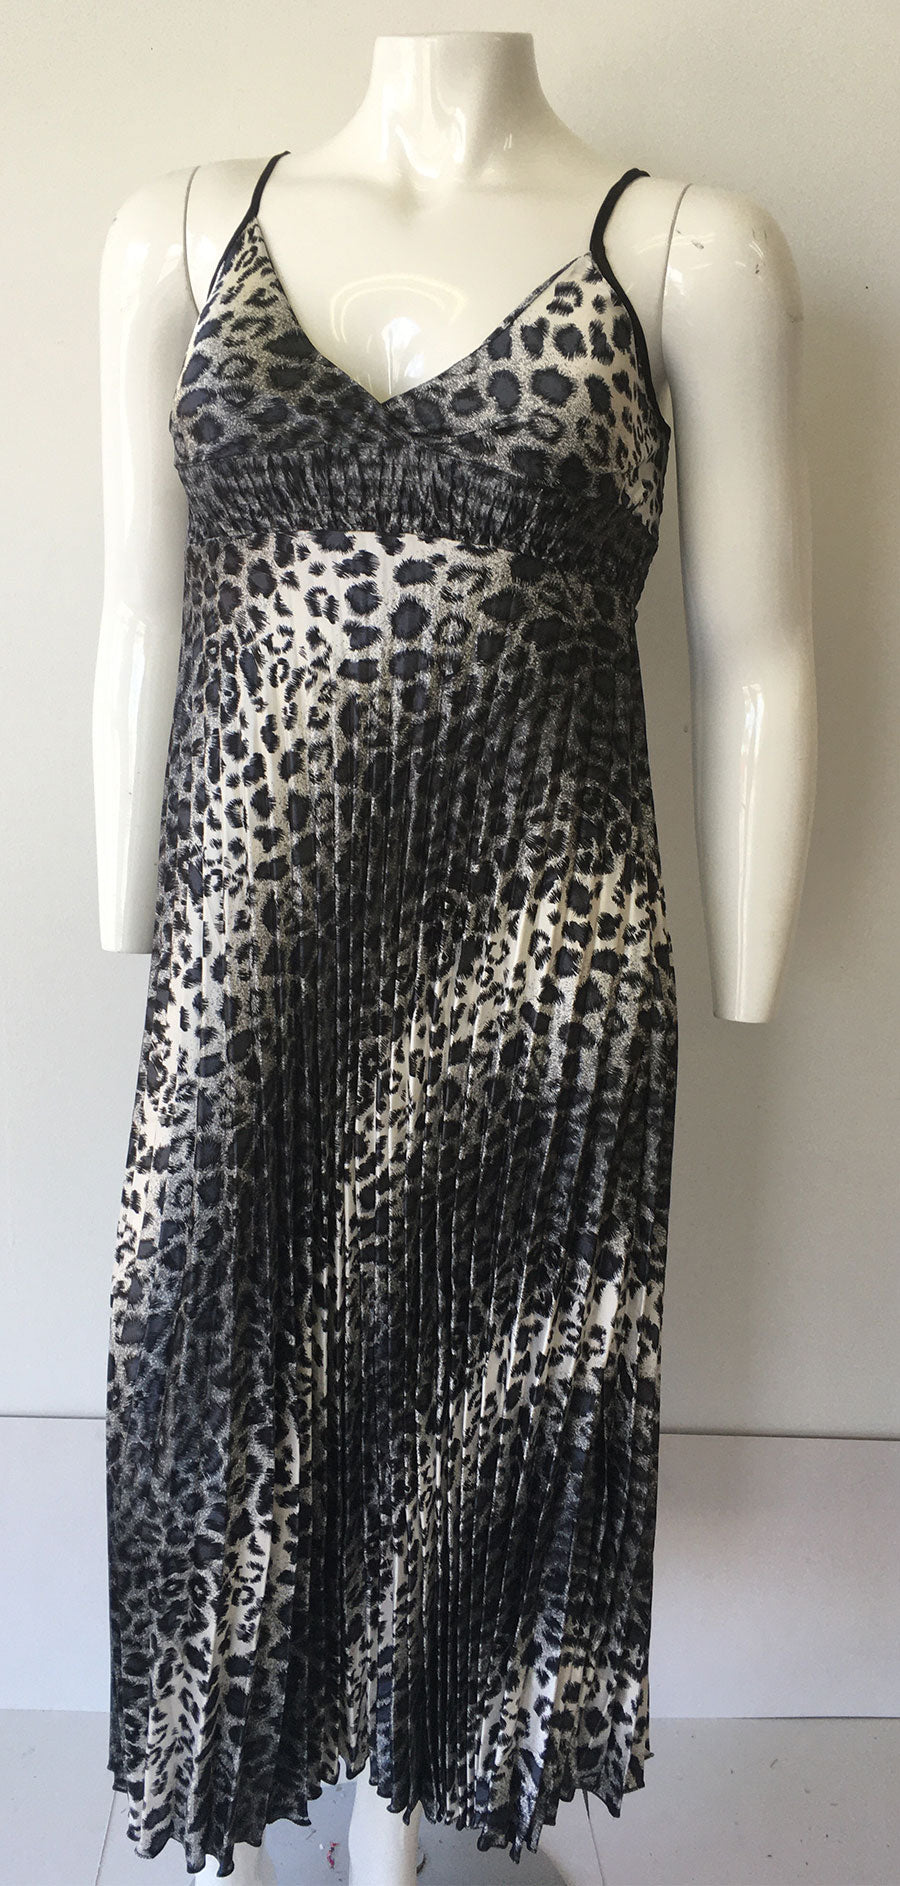 Casual Dress SB256-Leopard/Grey - Church Suits For Less